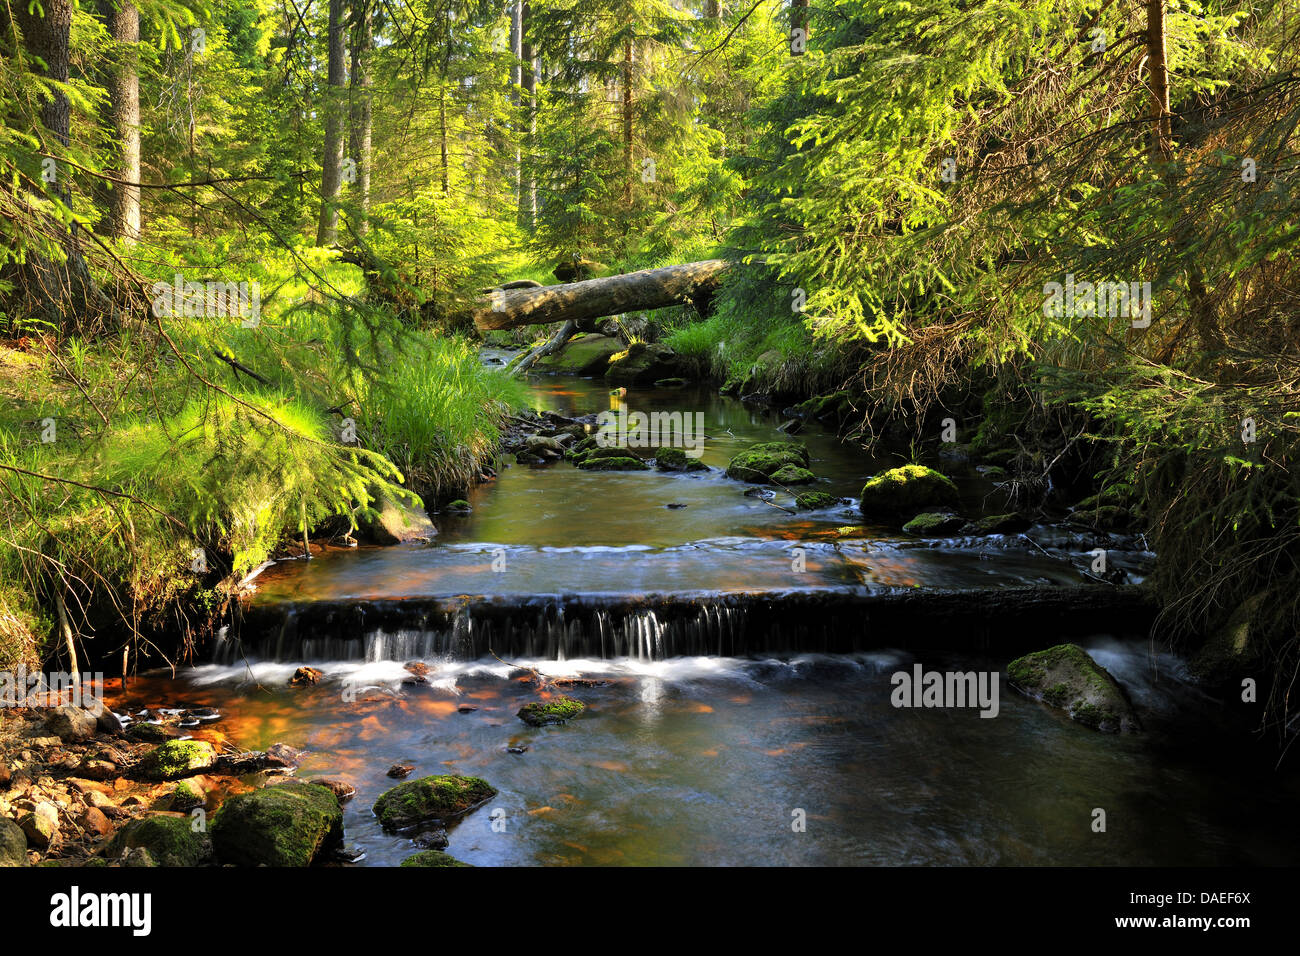 Forest stream, Germany, Lower Saxony, Harz National Park, Sankt Andreasberg - Stock Image